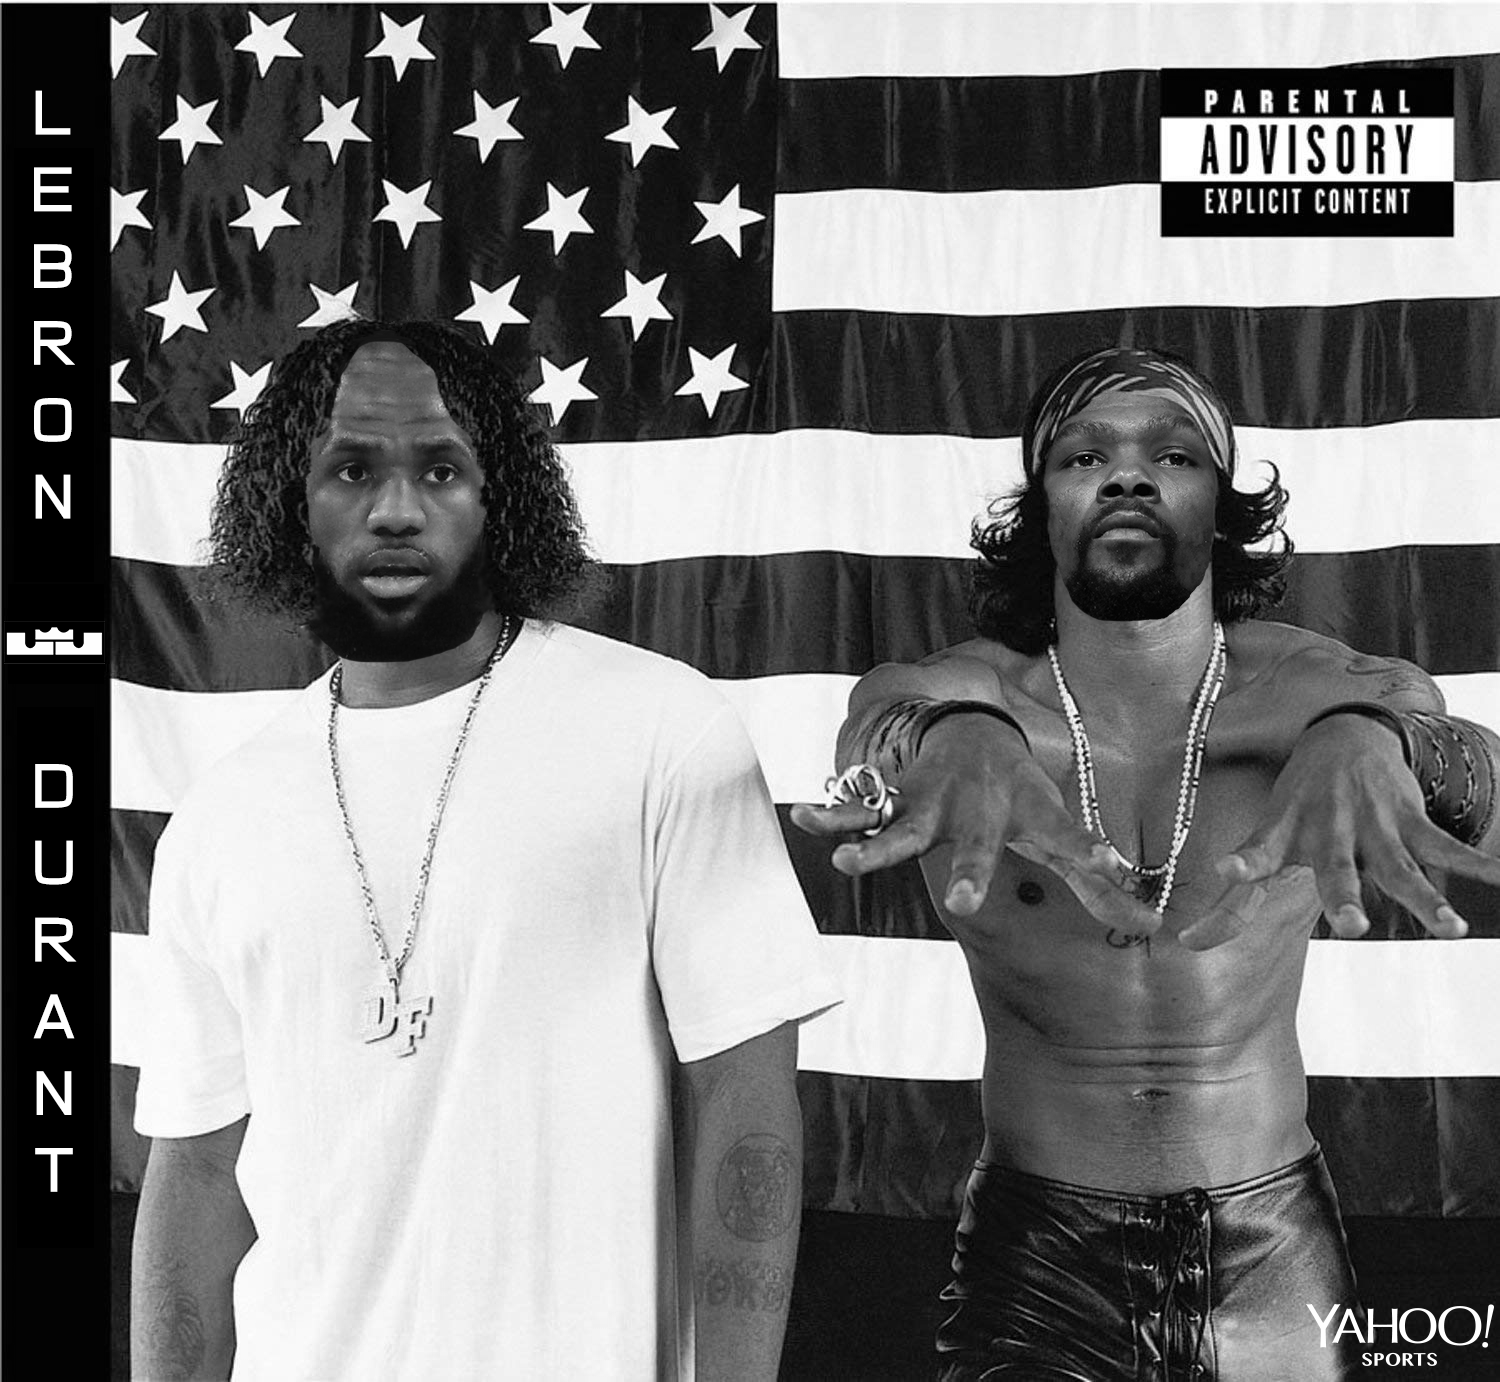 LeBron & KD Album Covers